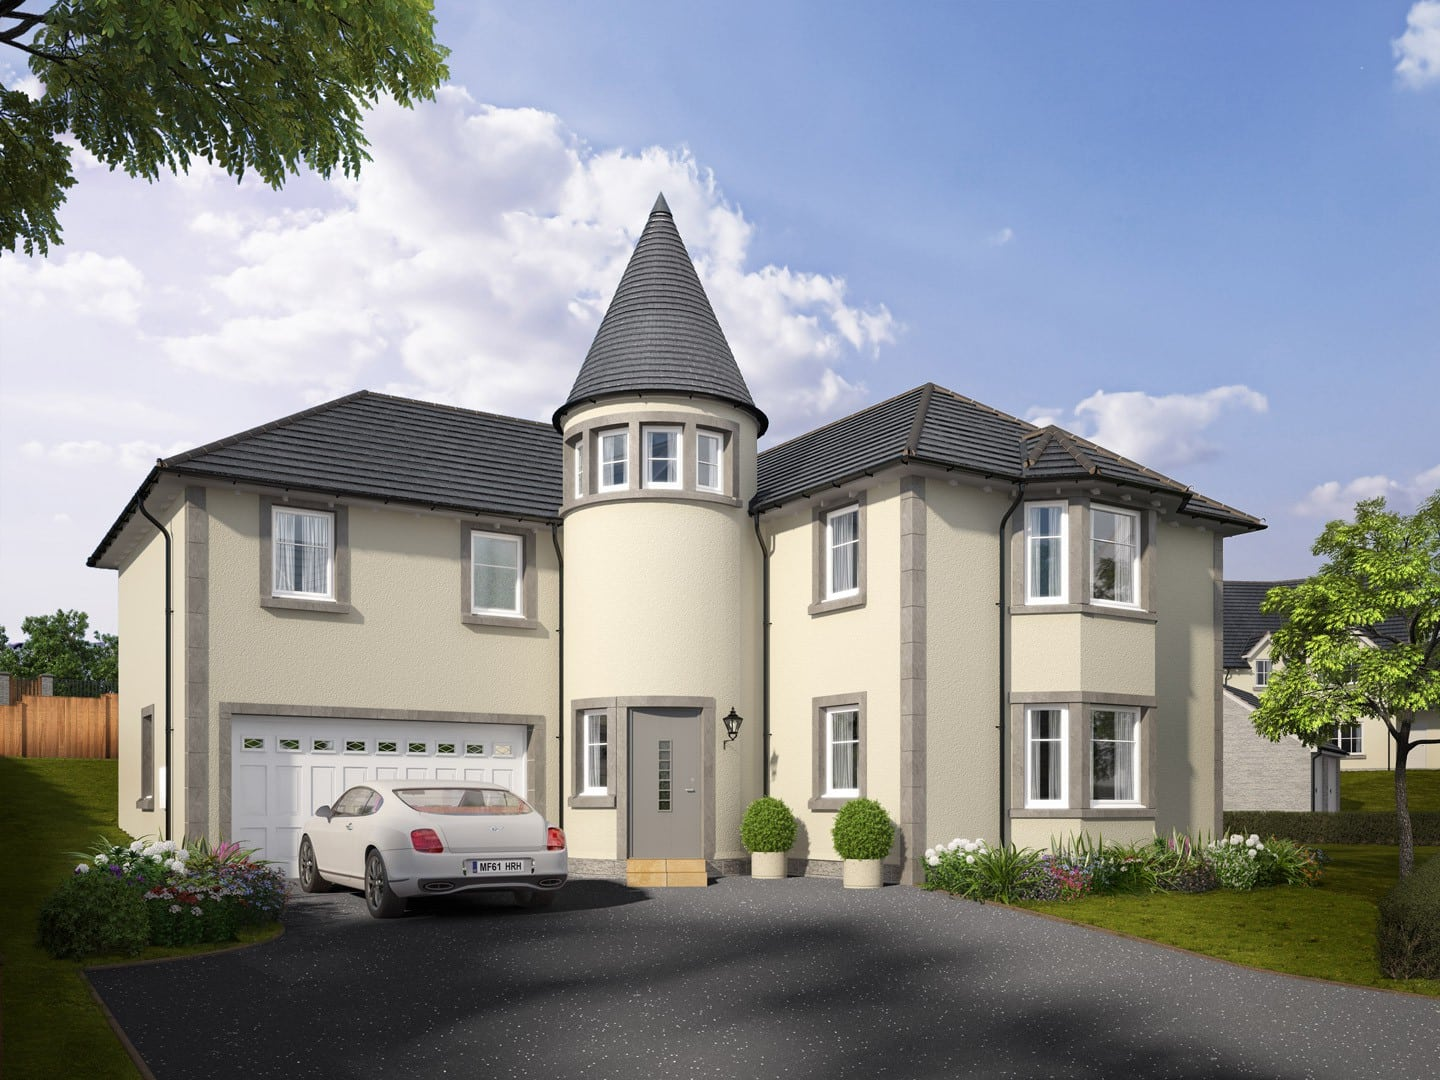 Property To Rent In Kingswells Aberdeenshire